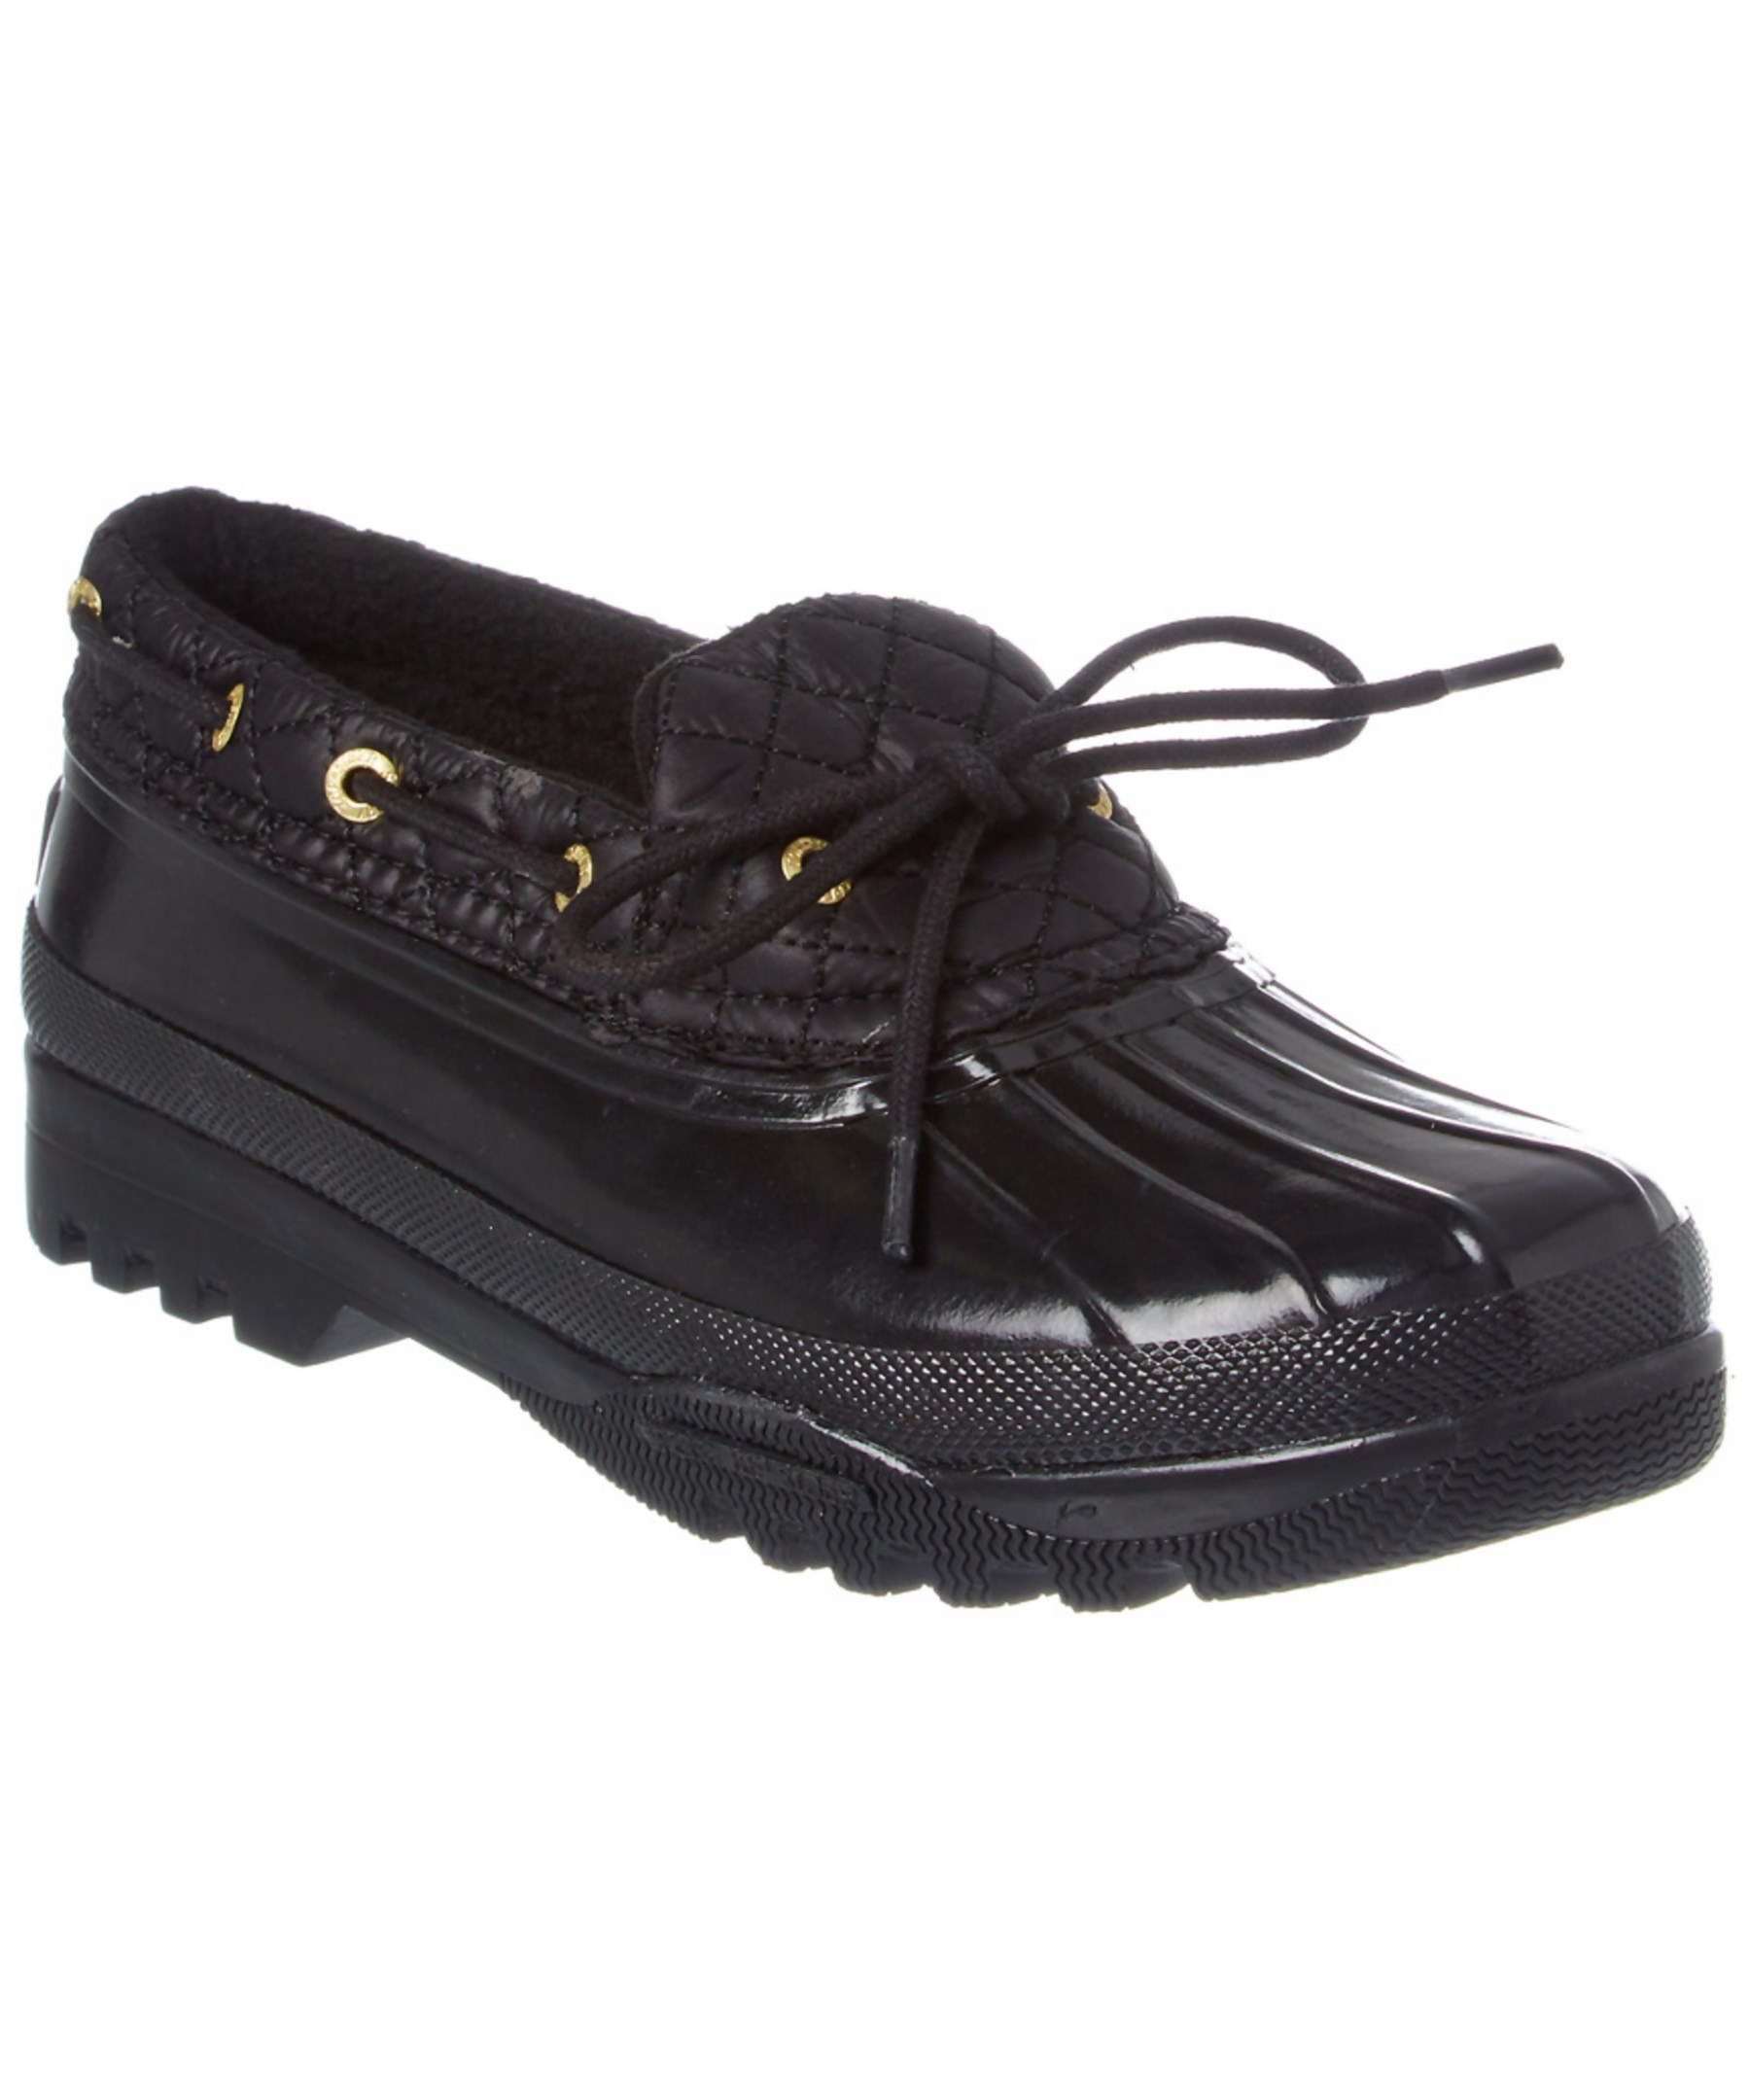 Sperry Top Sider Duckling Duck Shoes